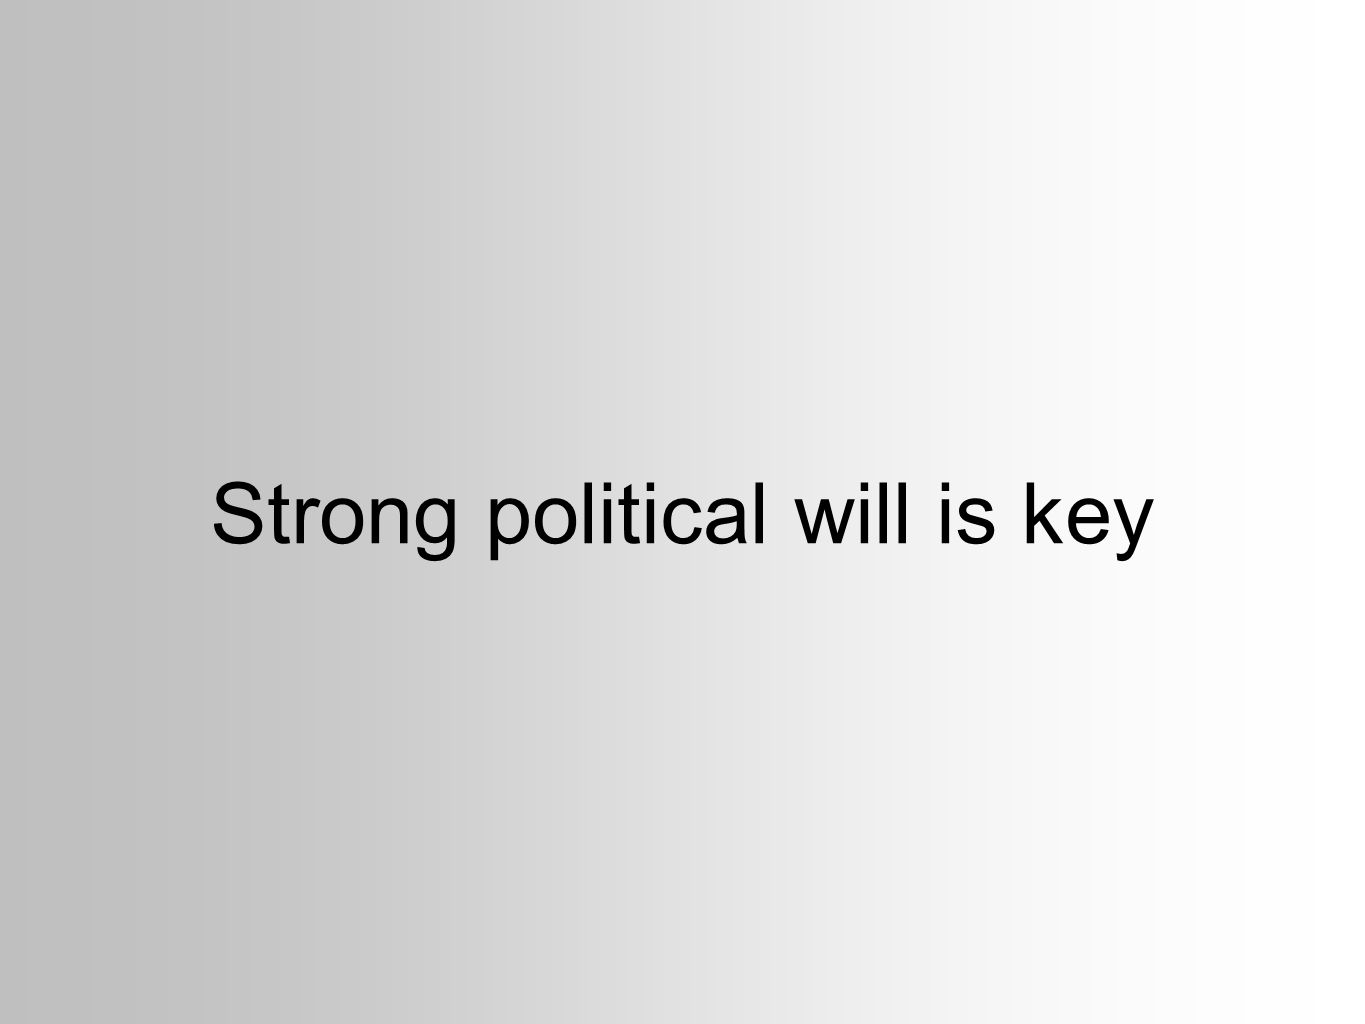 Strong political will is key